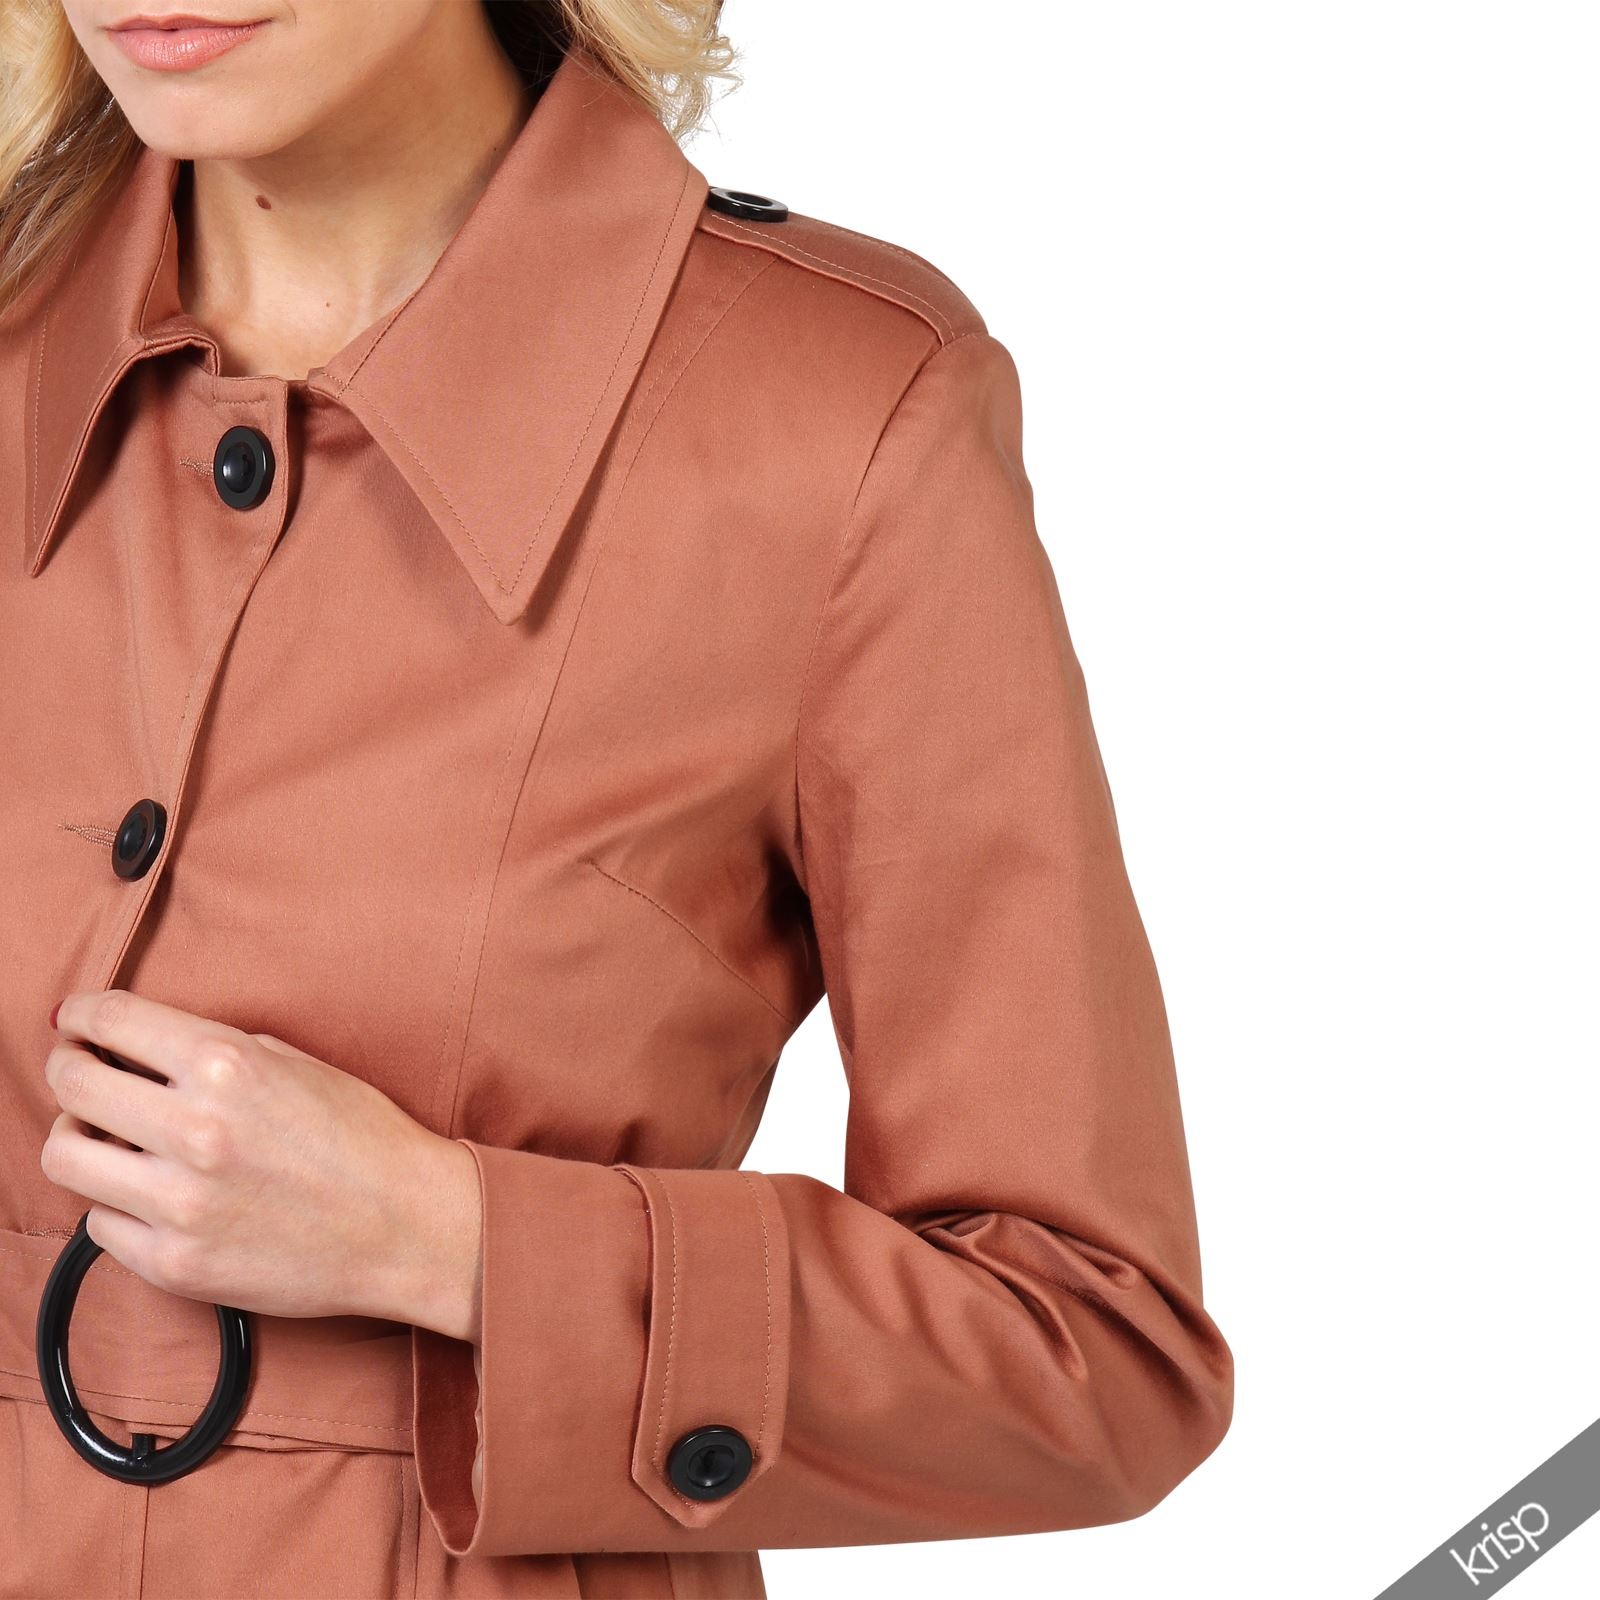 UK-Ladies-Classic-Asymmetric-Mac-Jacket-Womens-Military-Belted-Trench-Coat thumbnail 13